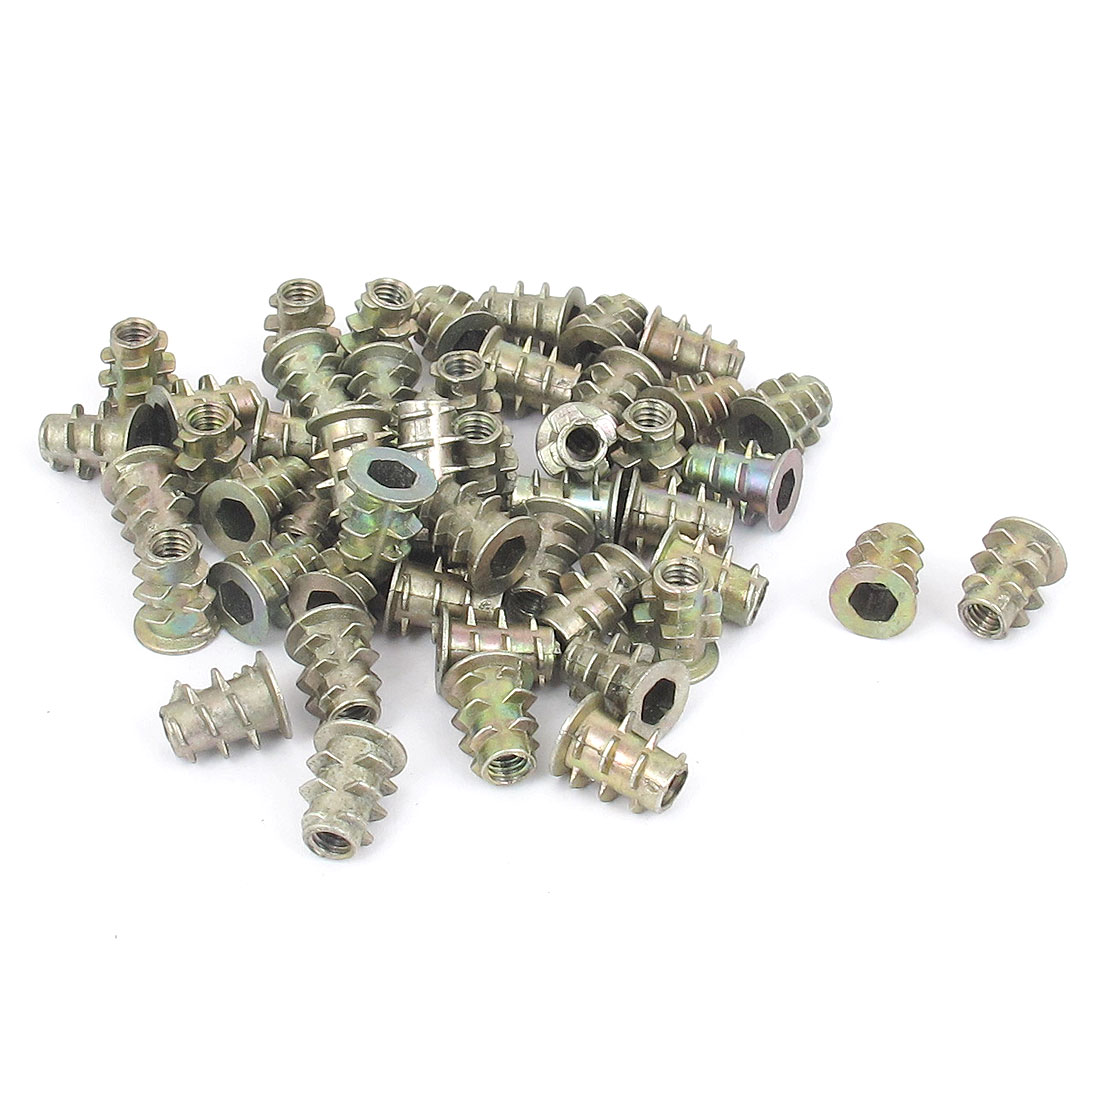 50 Pcs M4x10mm Zinc Plated Hex Socket Screw in Thread Insert Nut for Wood